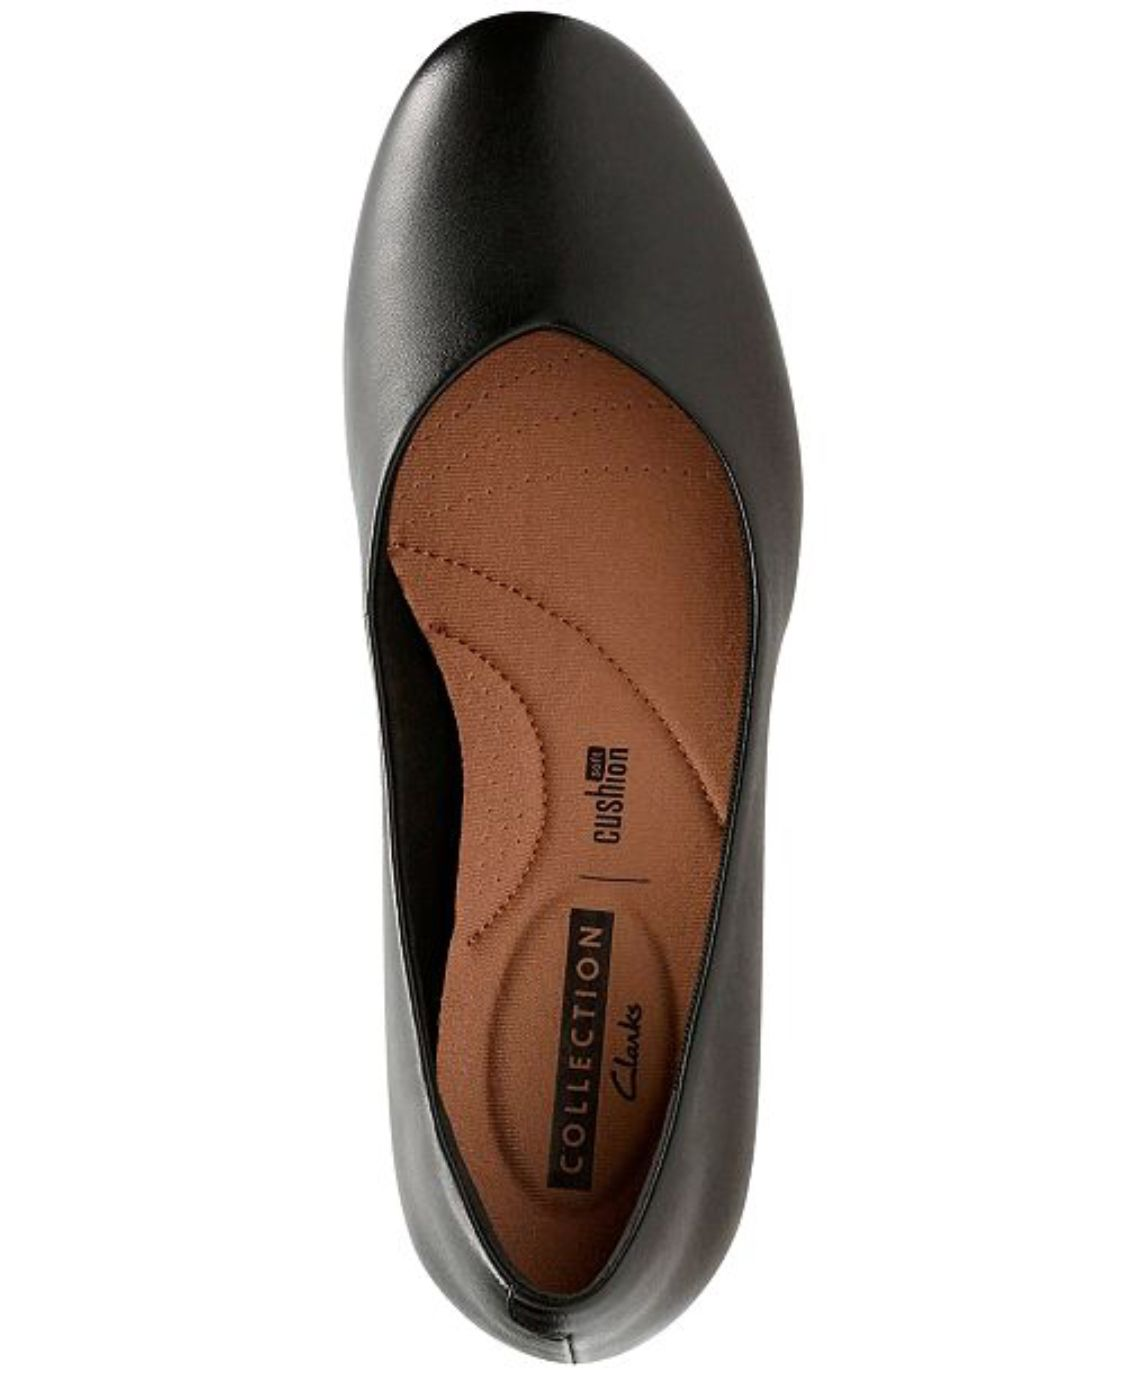 74295f75264c Clarks Flores Tulip Wedge Pump in Black Leather